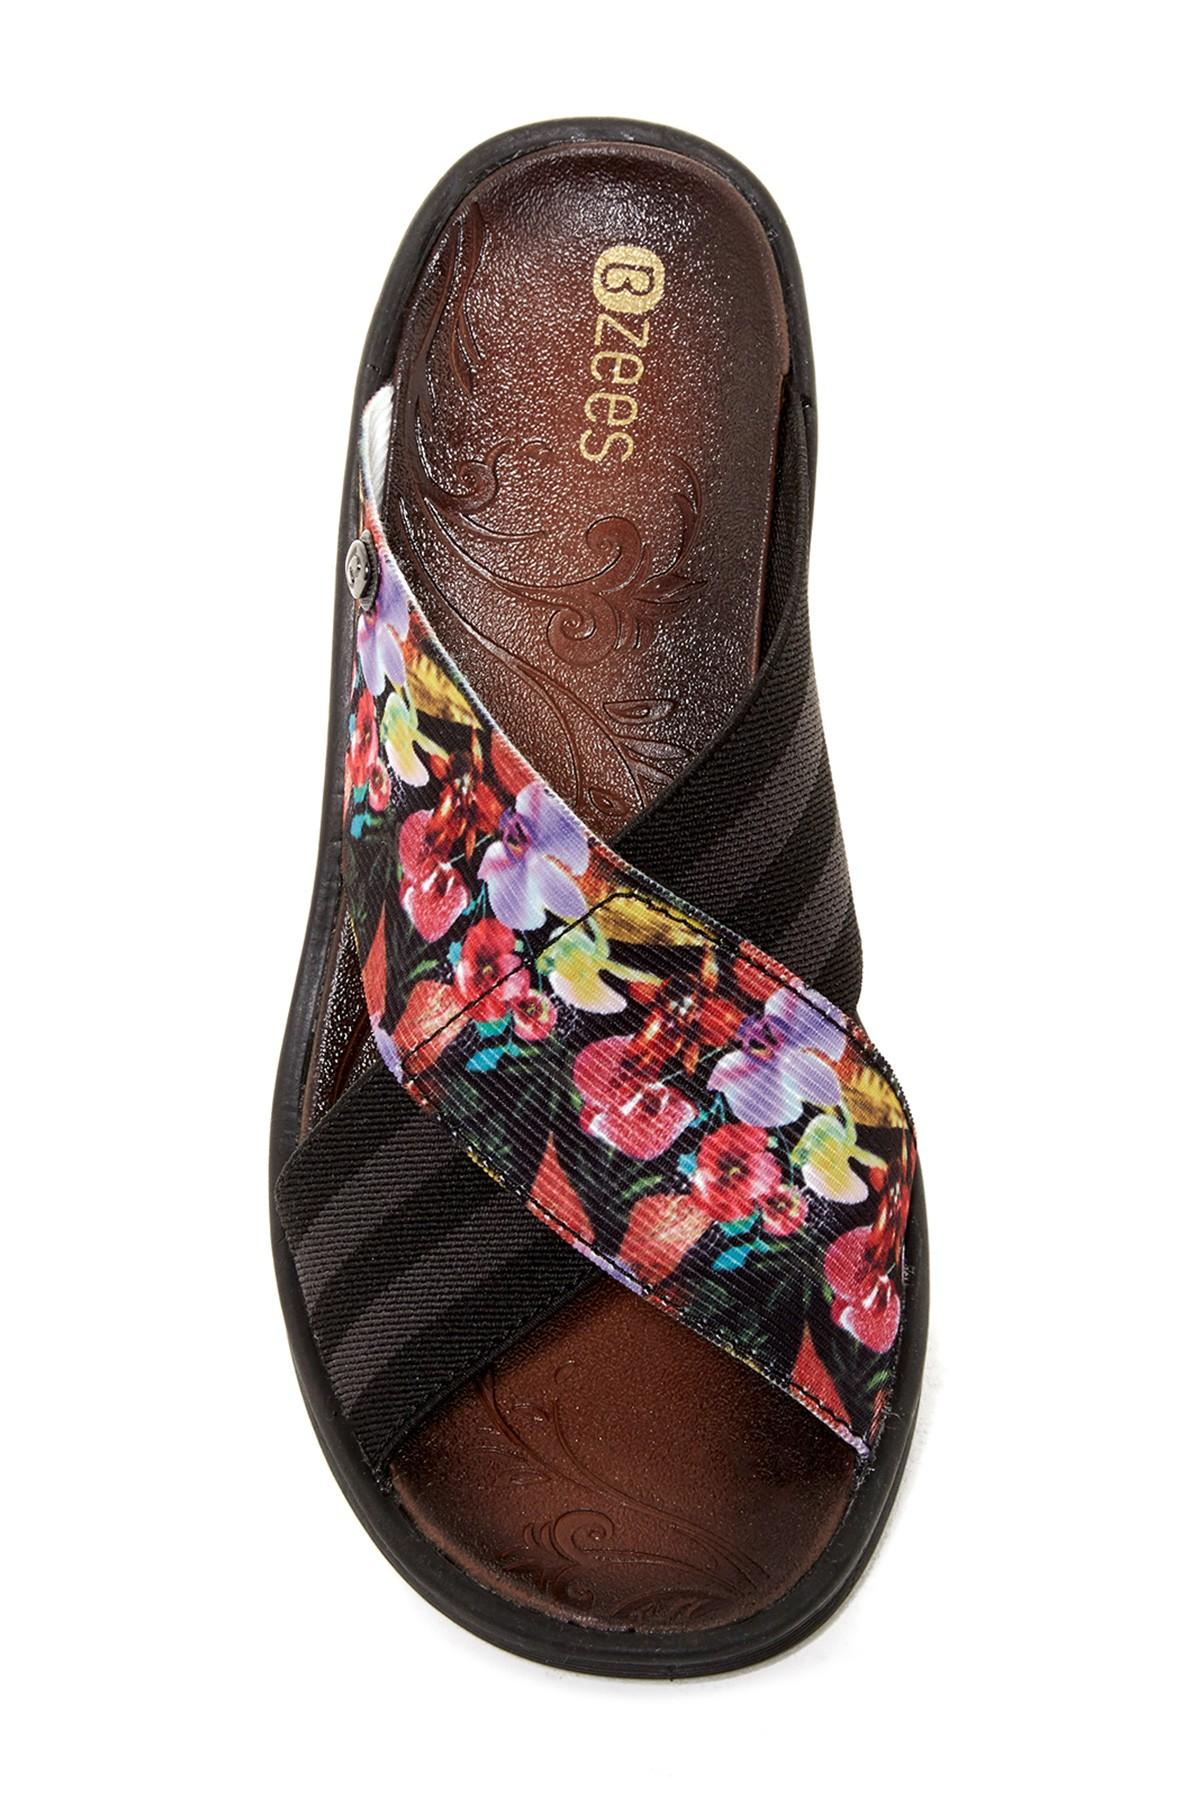 Lyst Bzees Desire Stripe Amp Floral Wedge Sandal In Black